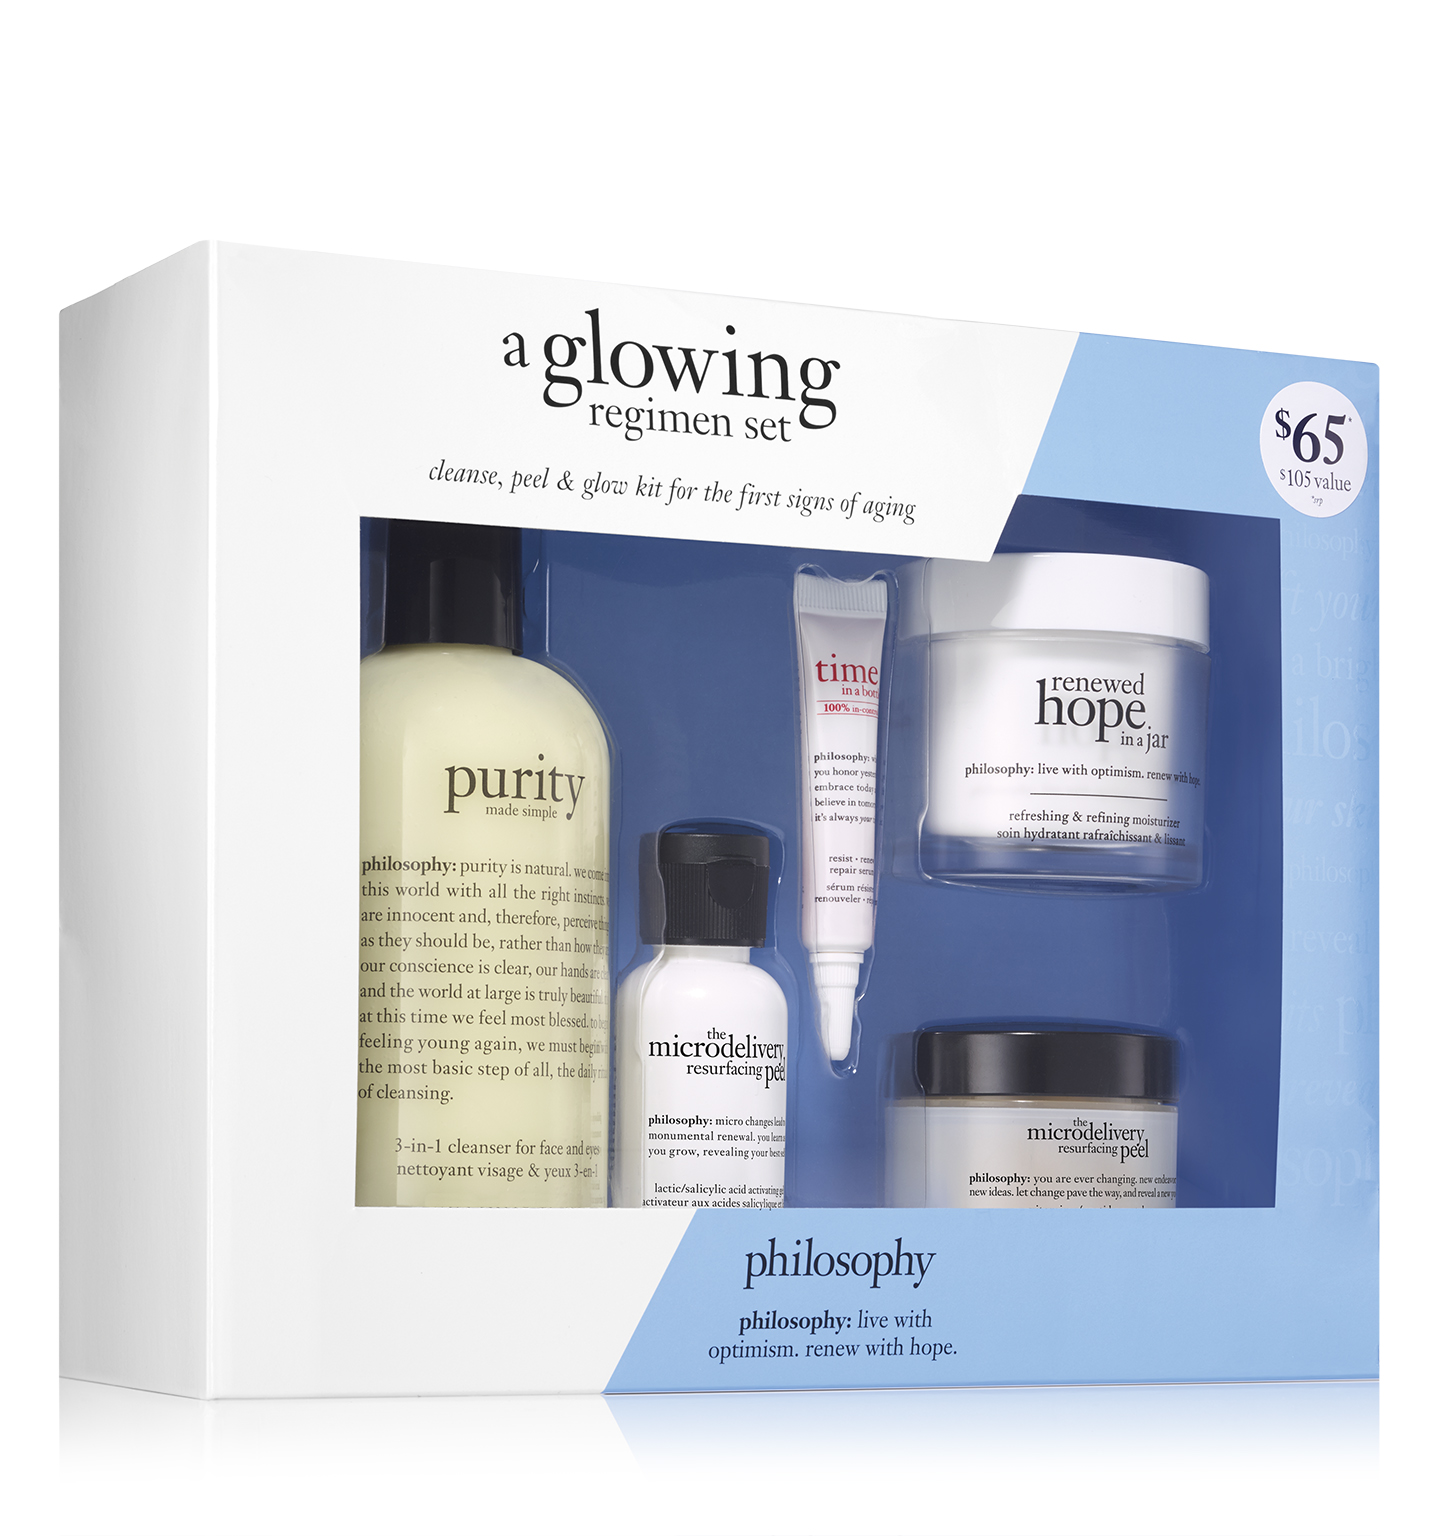 philosophy, a glowing regimen set